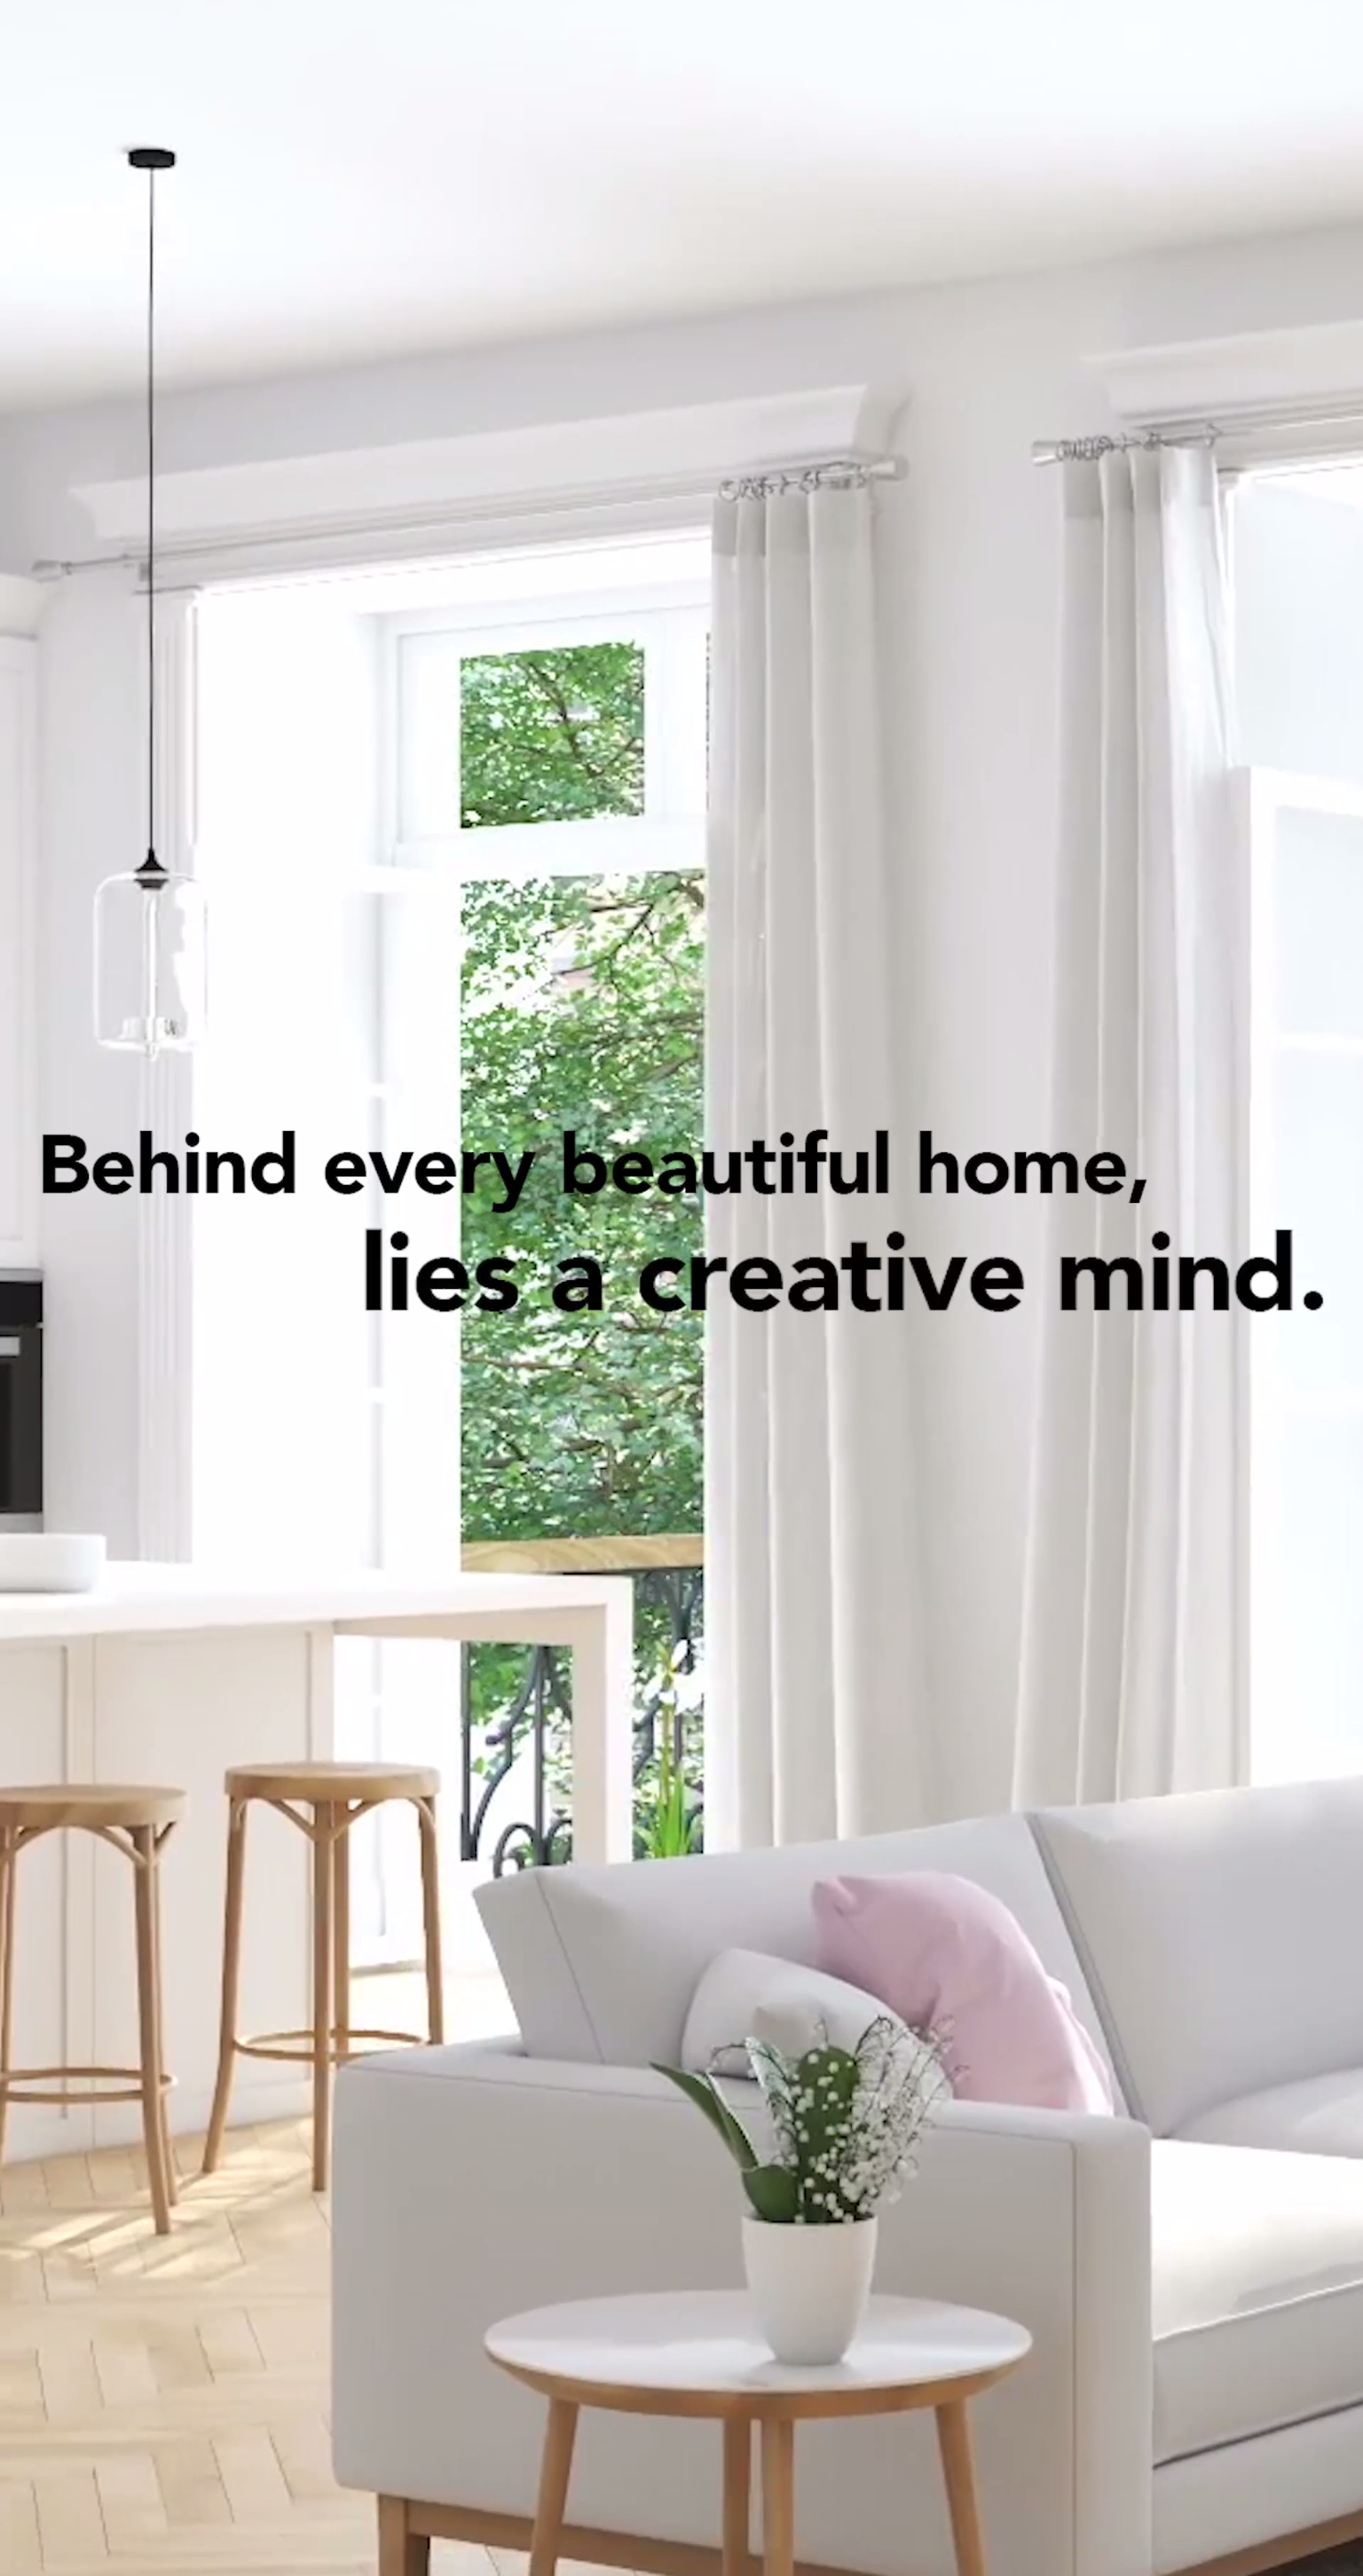 App To Design Your Room: Behind Every Beautiful Home, Lies A Creative Mind. Our